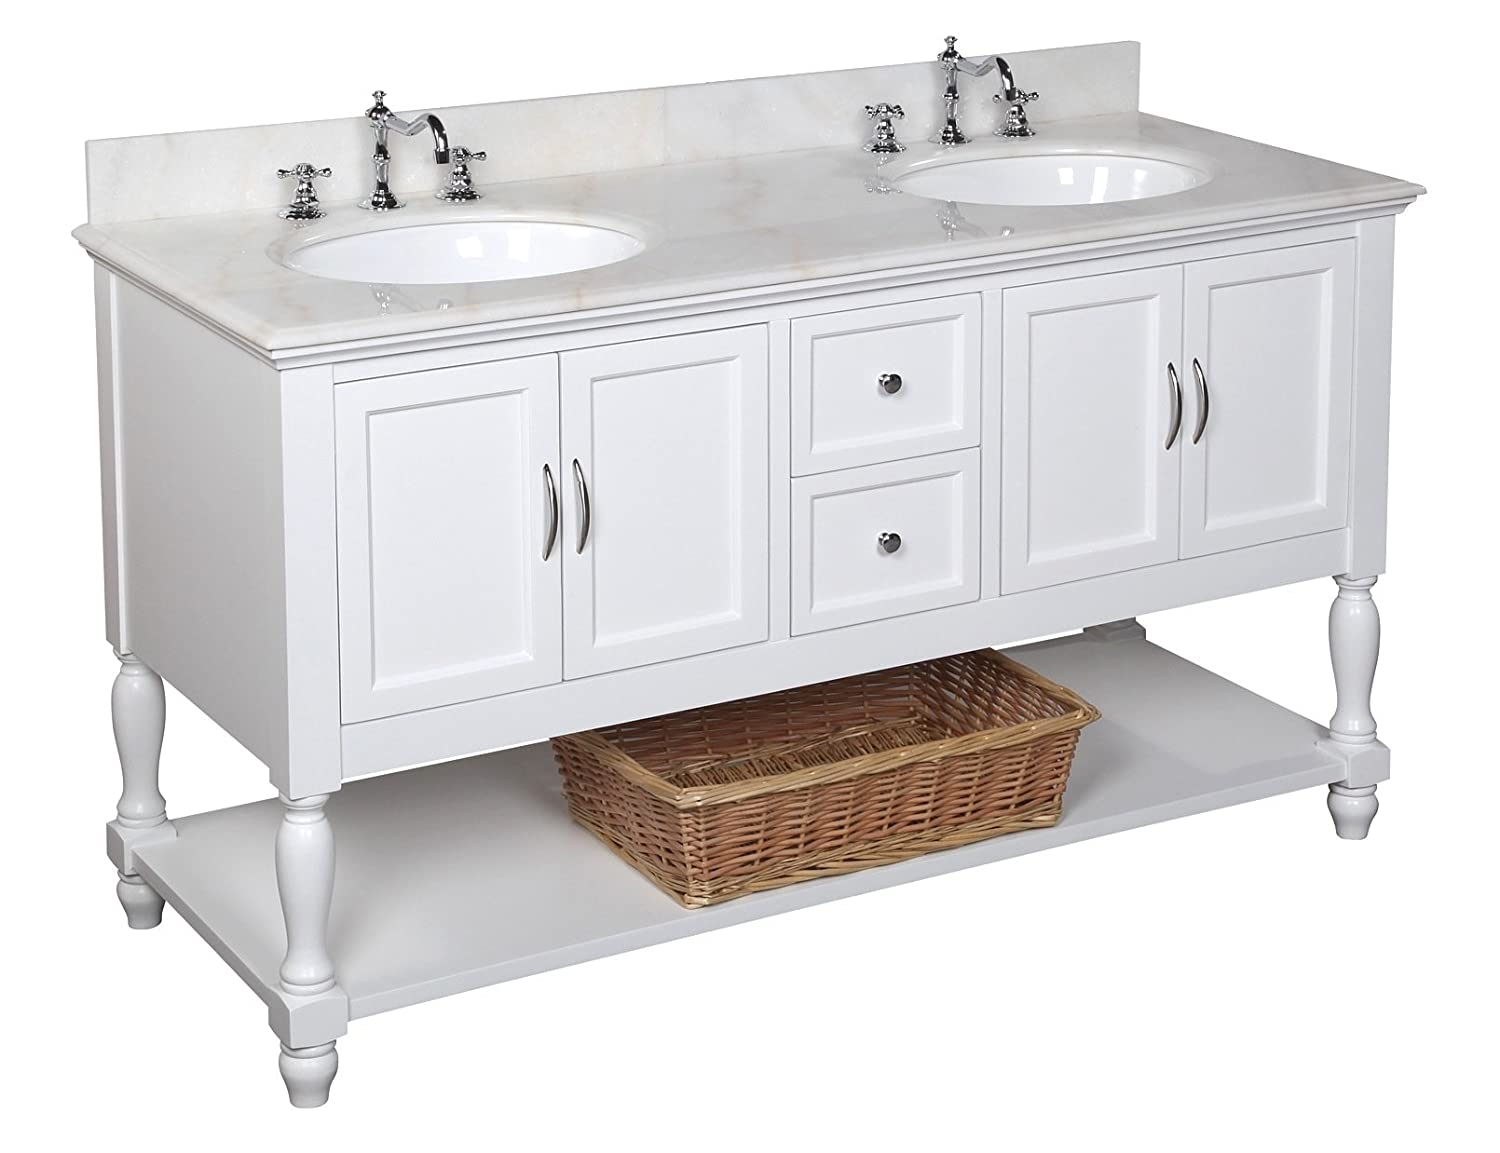 kitchen bath collection kbc667wtwt beverly double sink bathroom vanity with marble countertop cabinet with soft close function and undermount ceramic sink